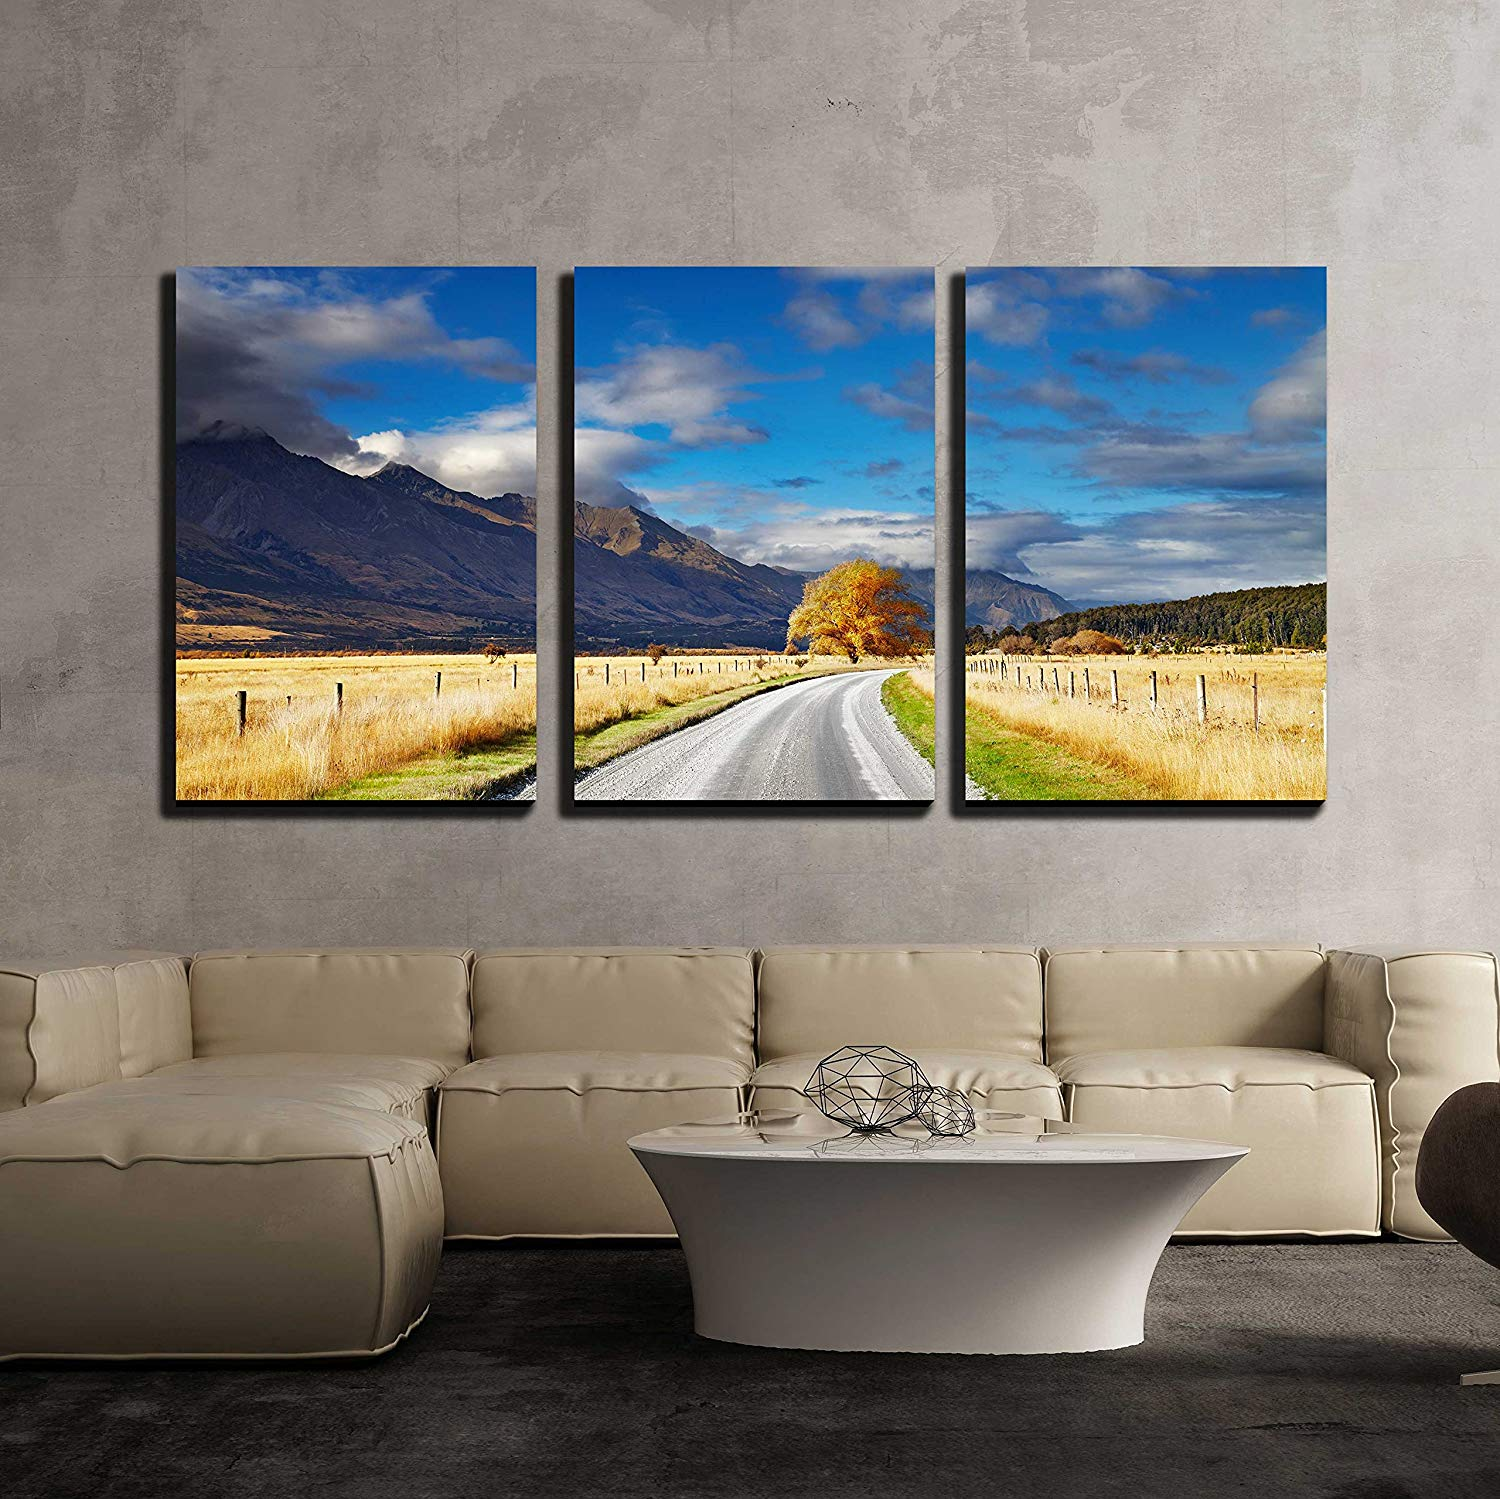 New Zealand Home Decor: Mountain Landscape With